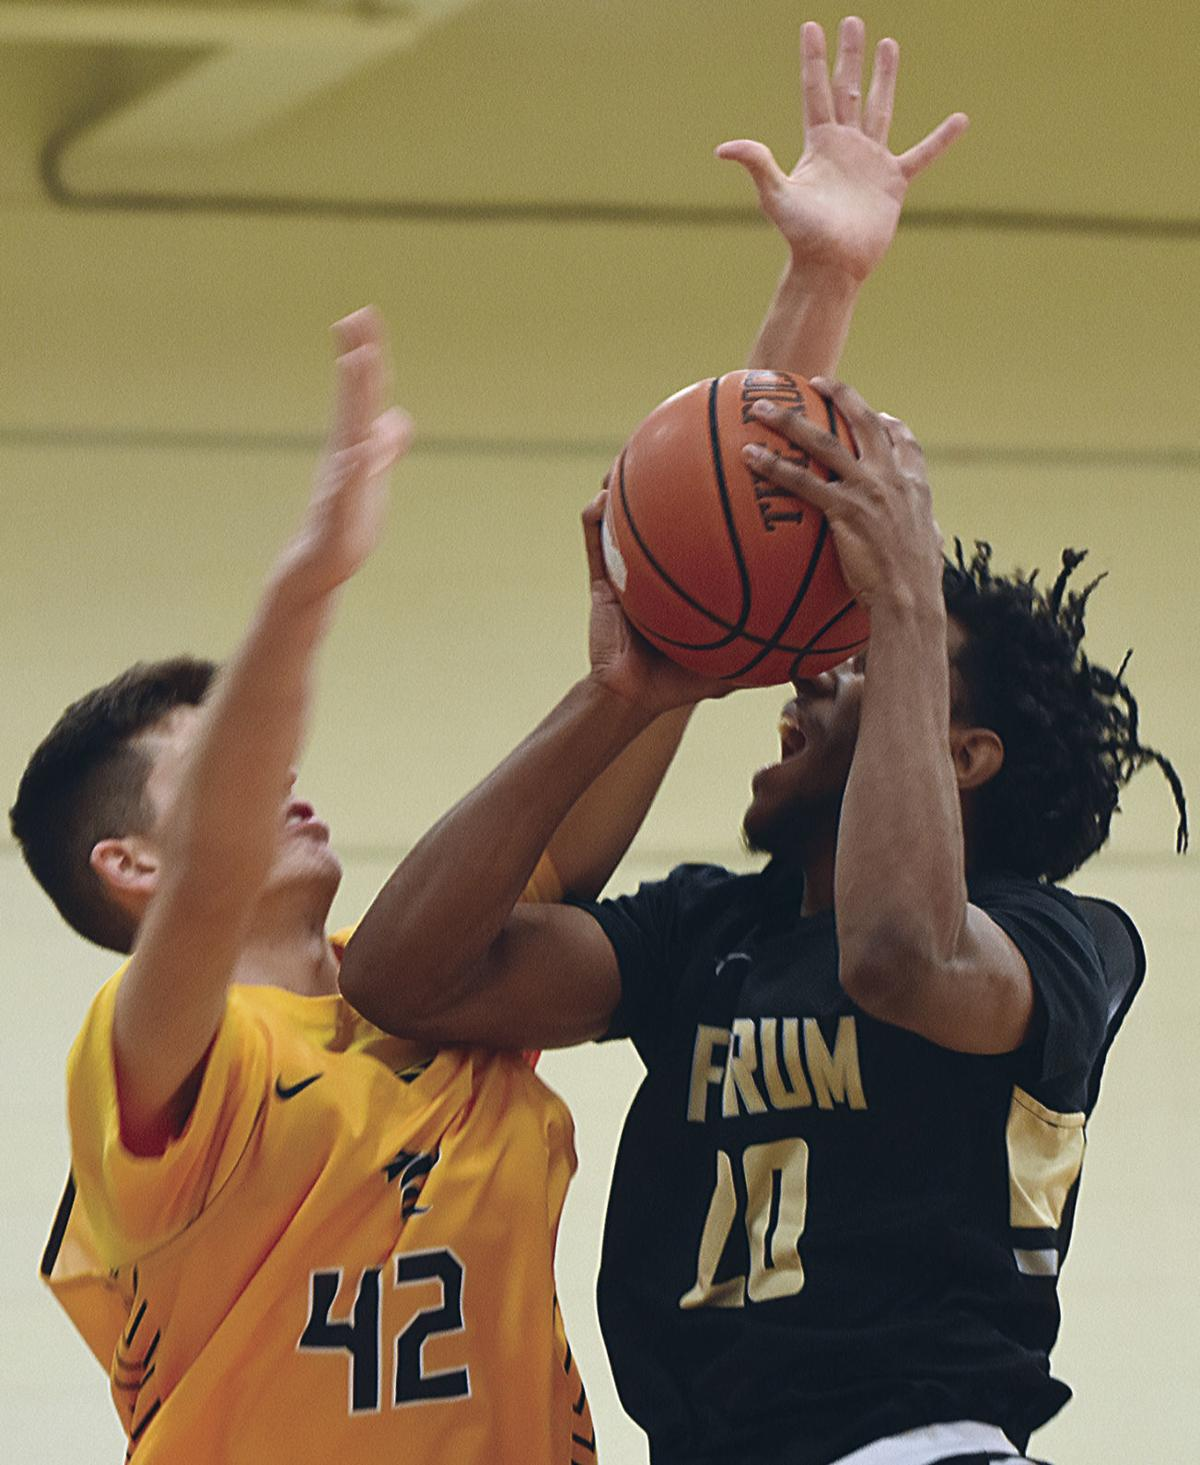 Panthers make ODAC tournament debut against Emory & Henry at home